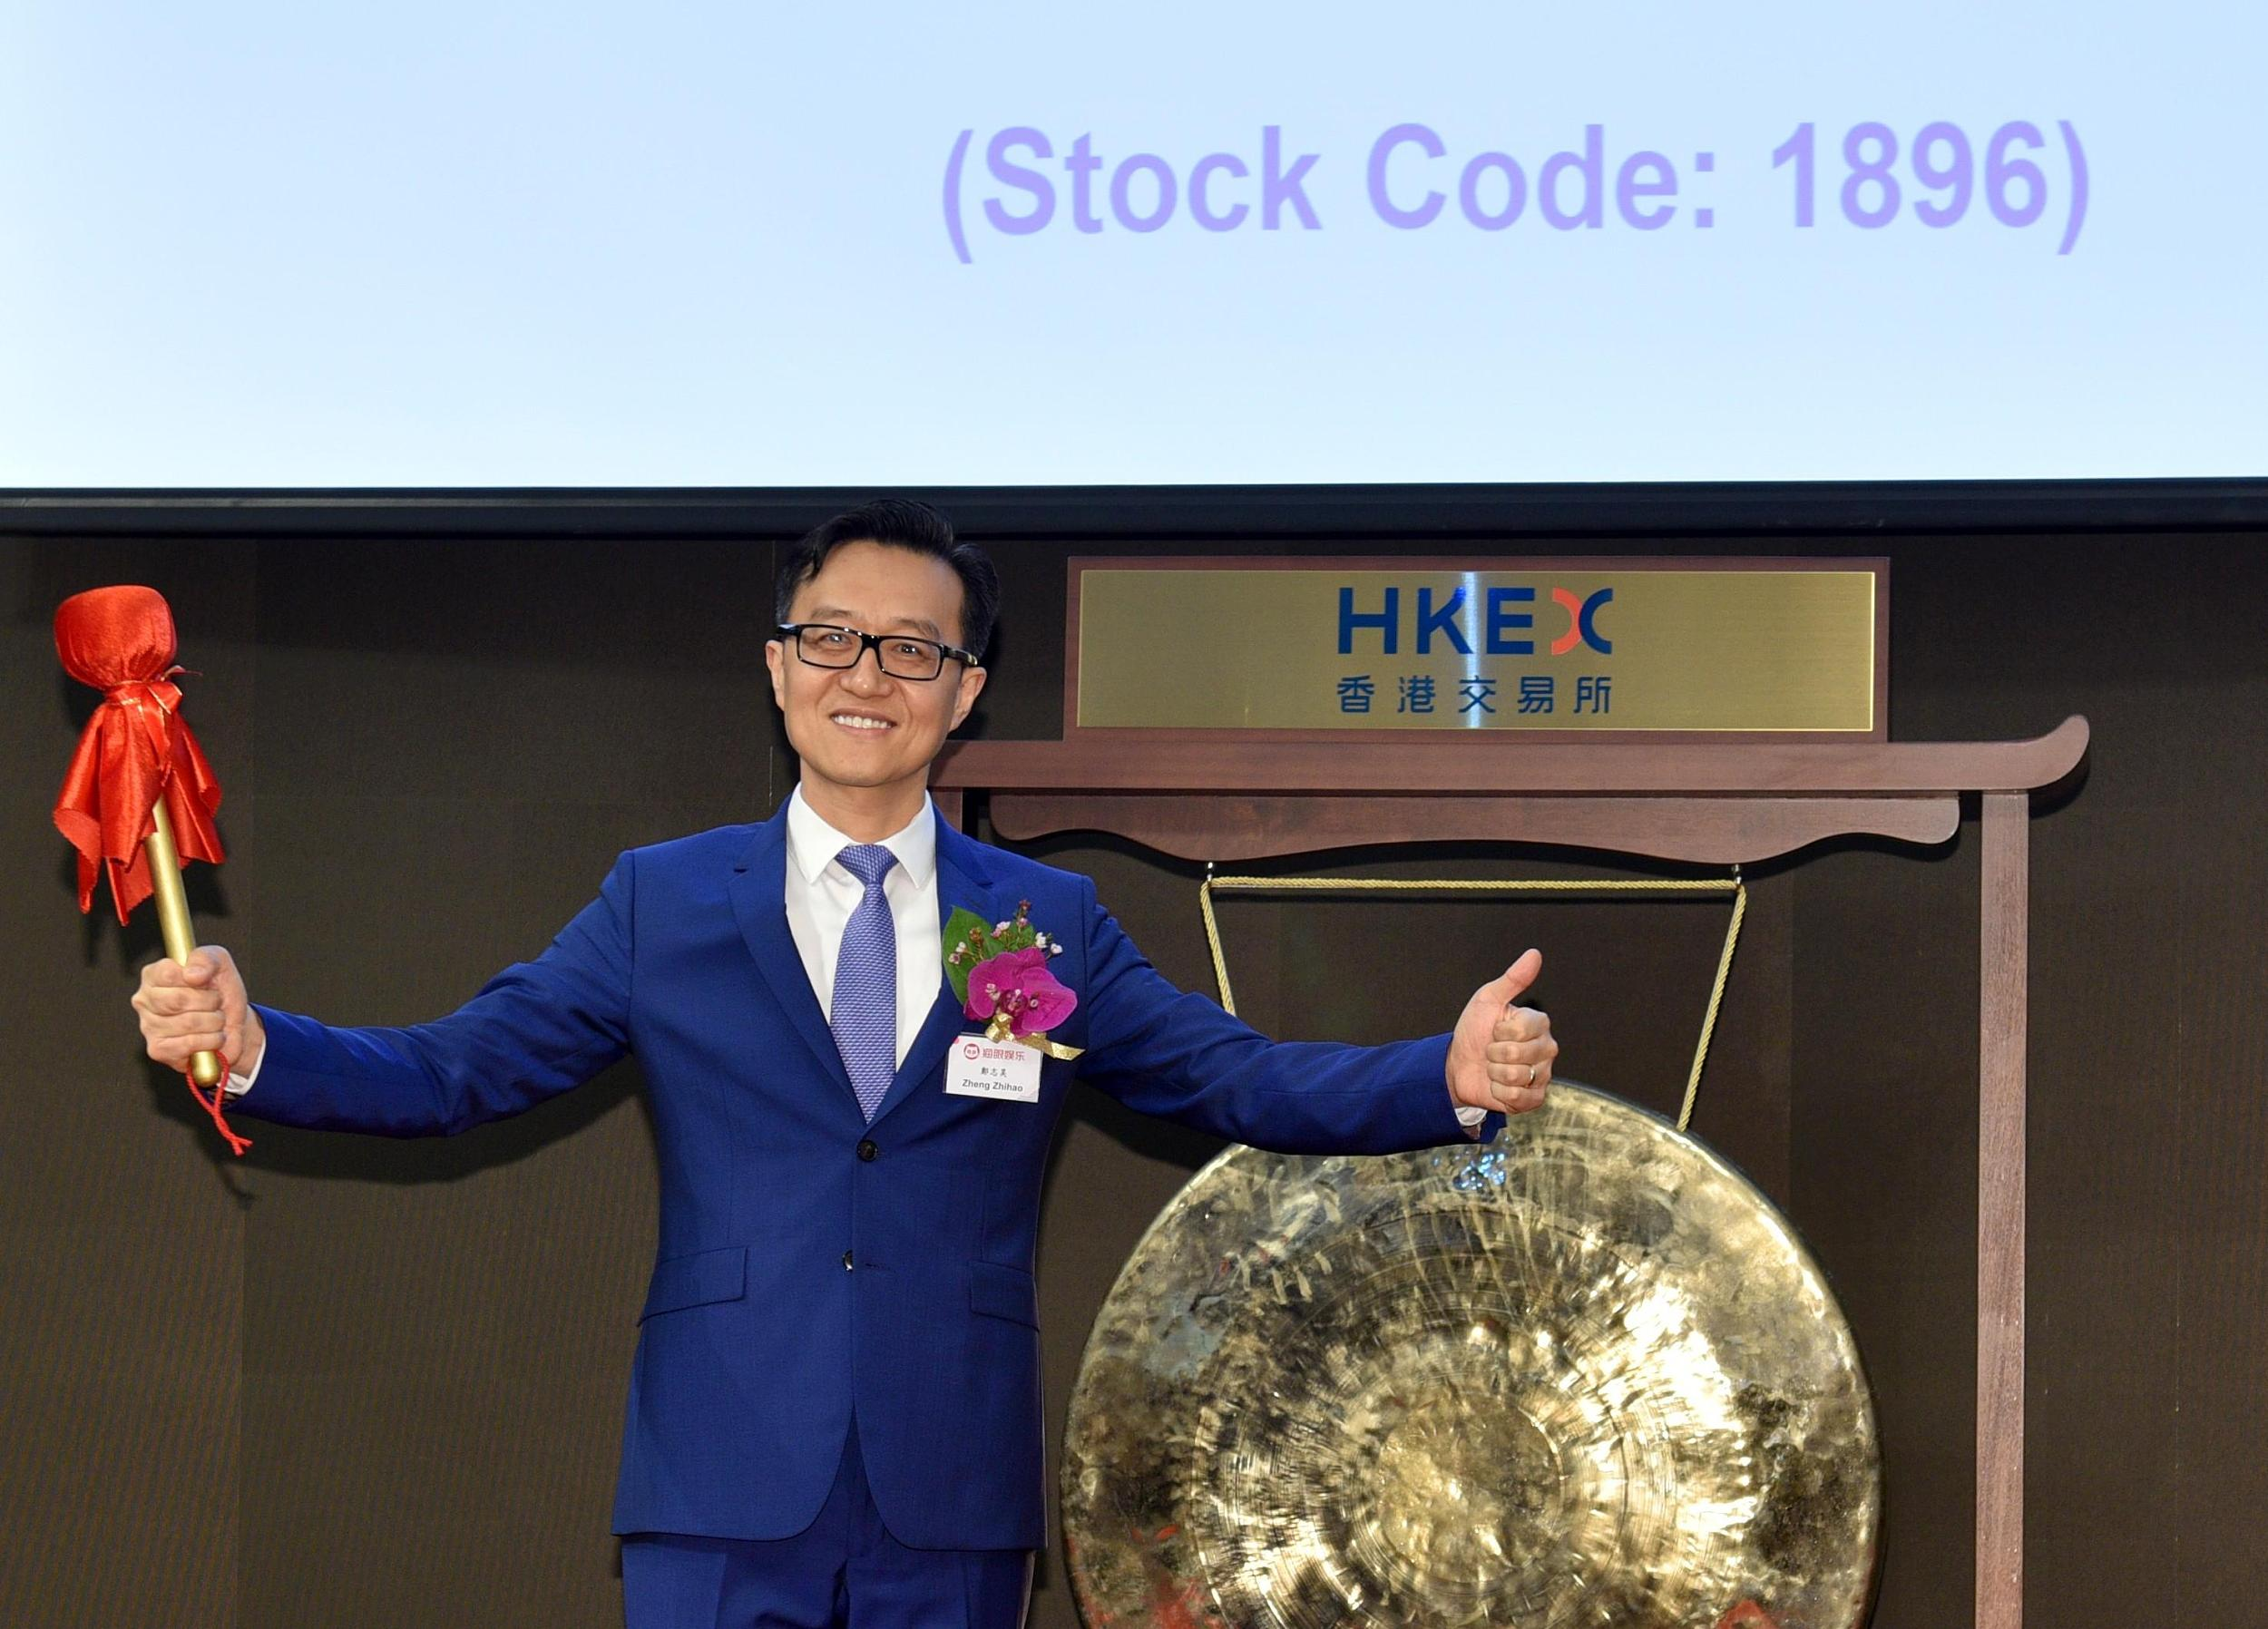 Maoyan CEO Zhihao Zheng celebrates the company's IPO on Feb. 4. Photo: VCG